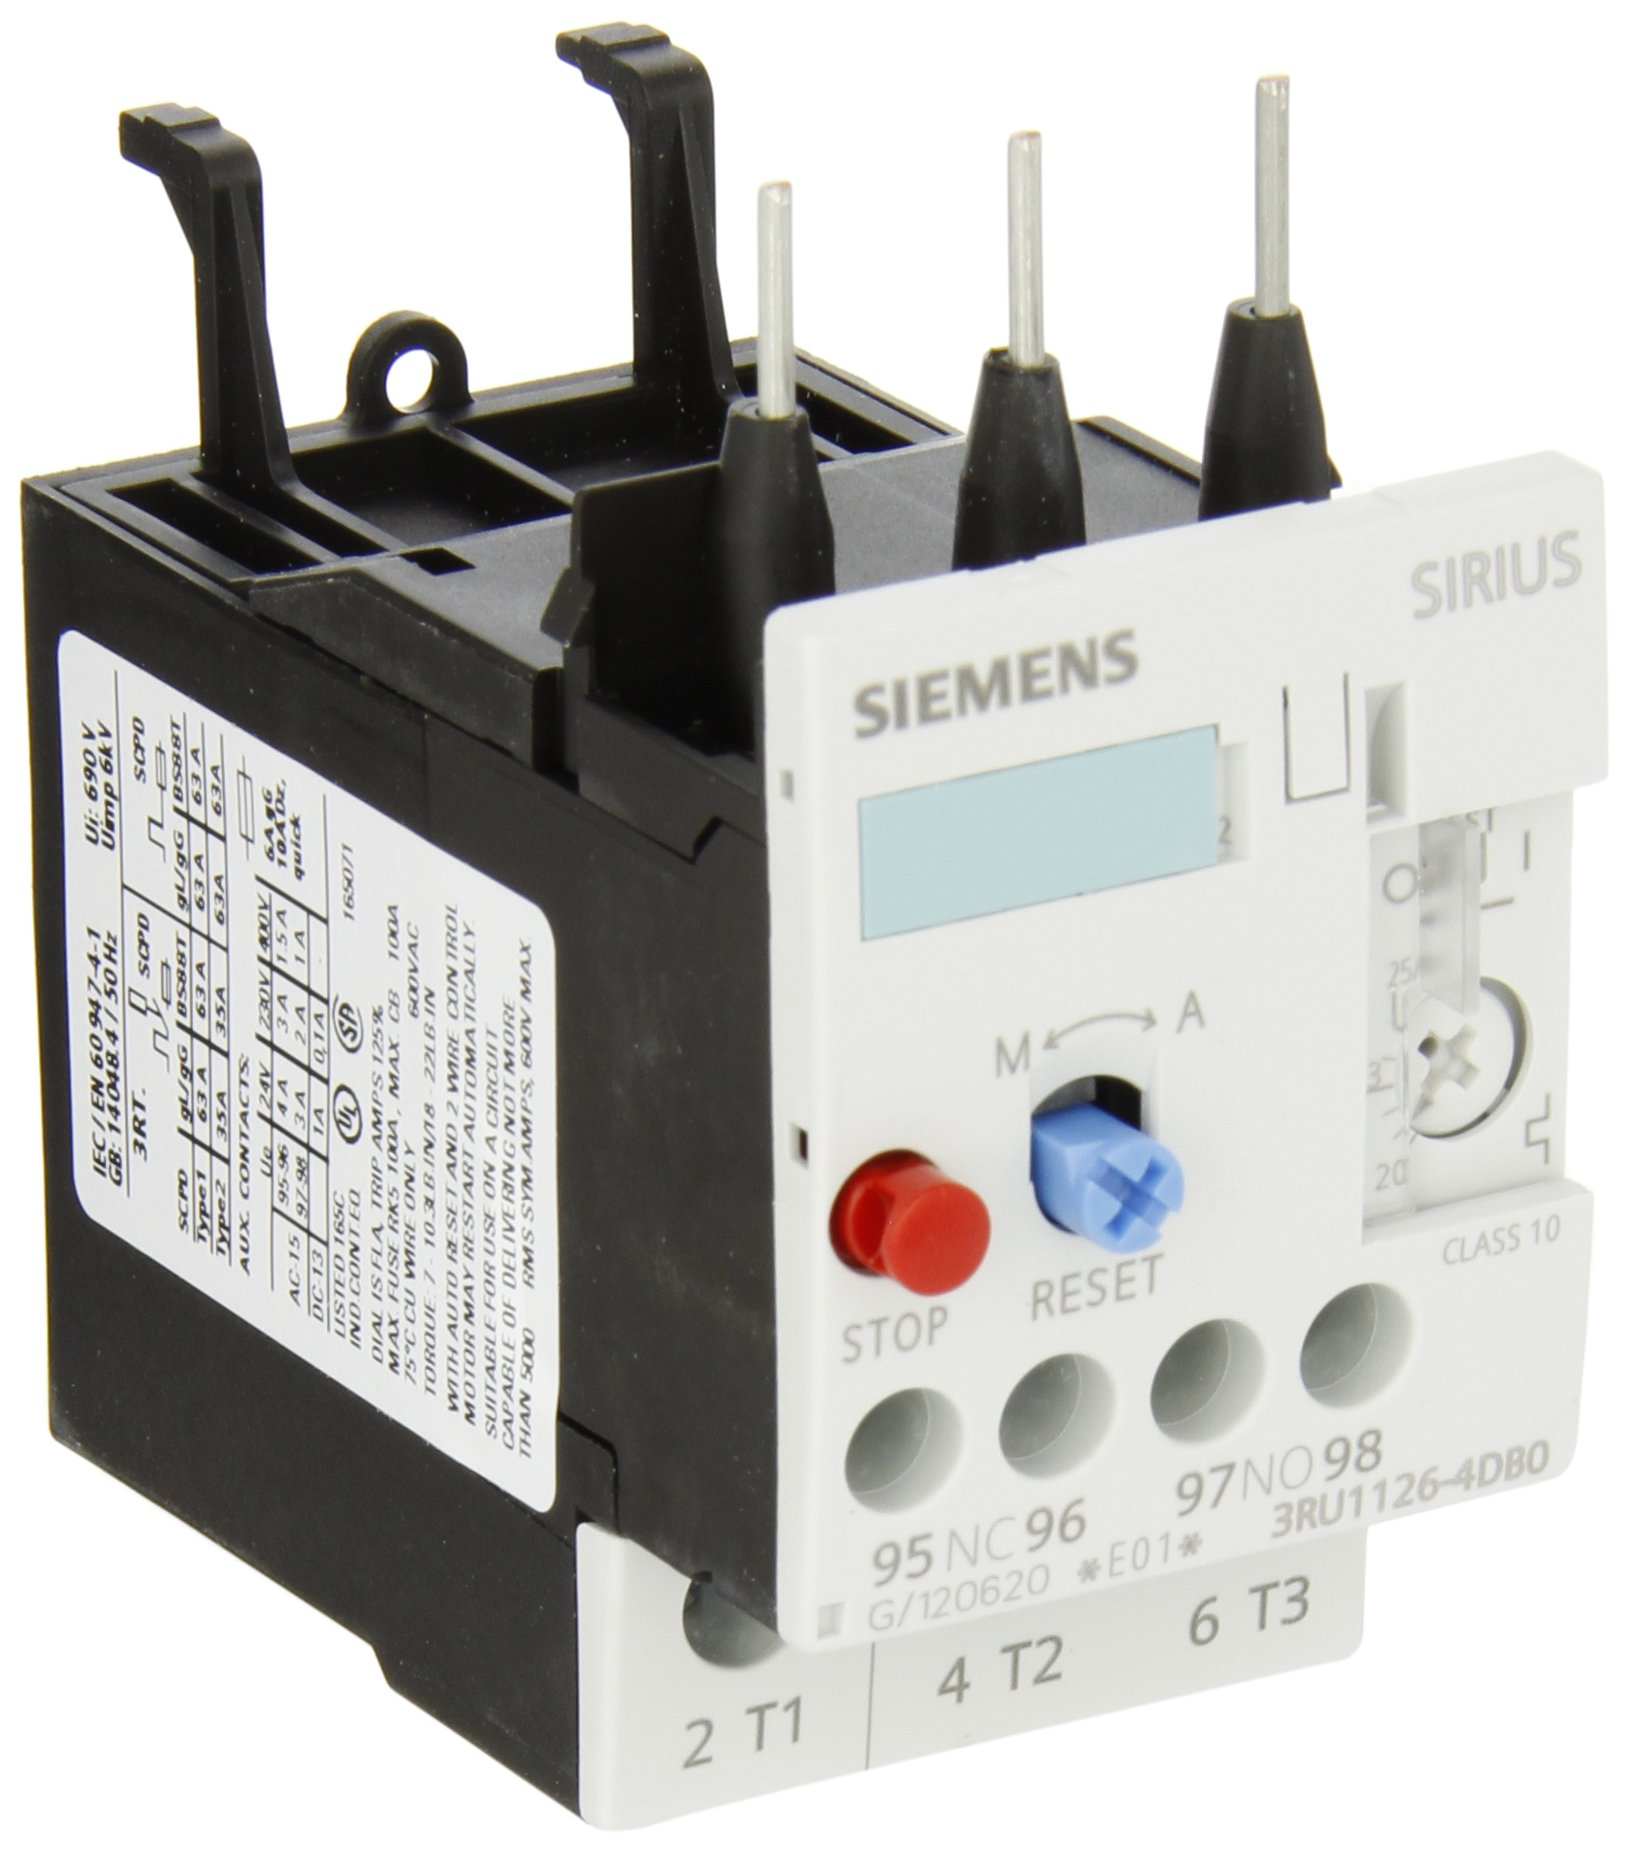 Siemens 3RU11 26-4DB0 Thermal Overload Relay, For Mounting Onto Contactor, Size S0, 20-25A Setting Range